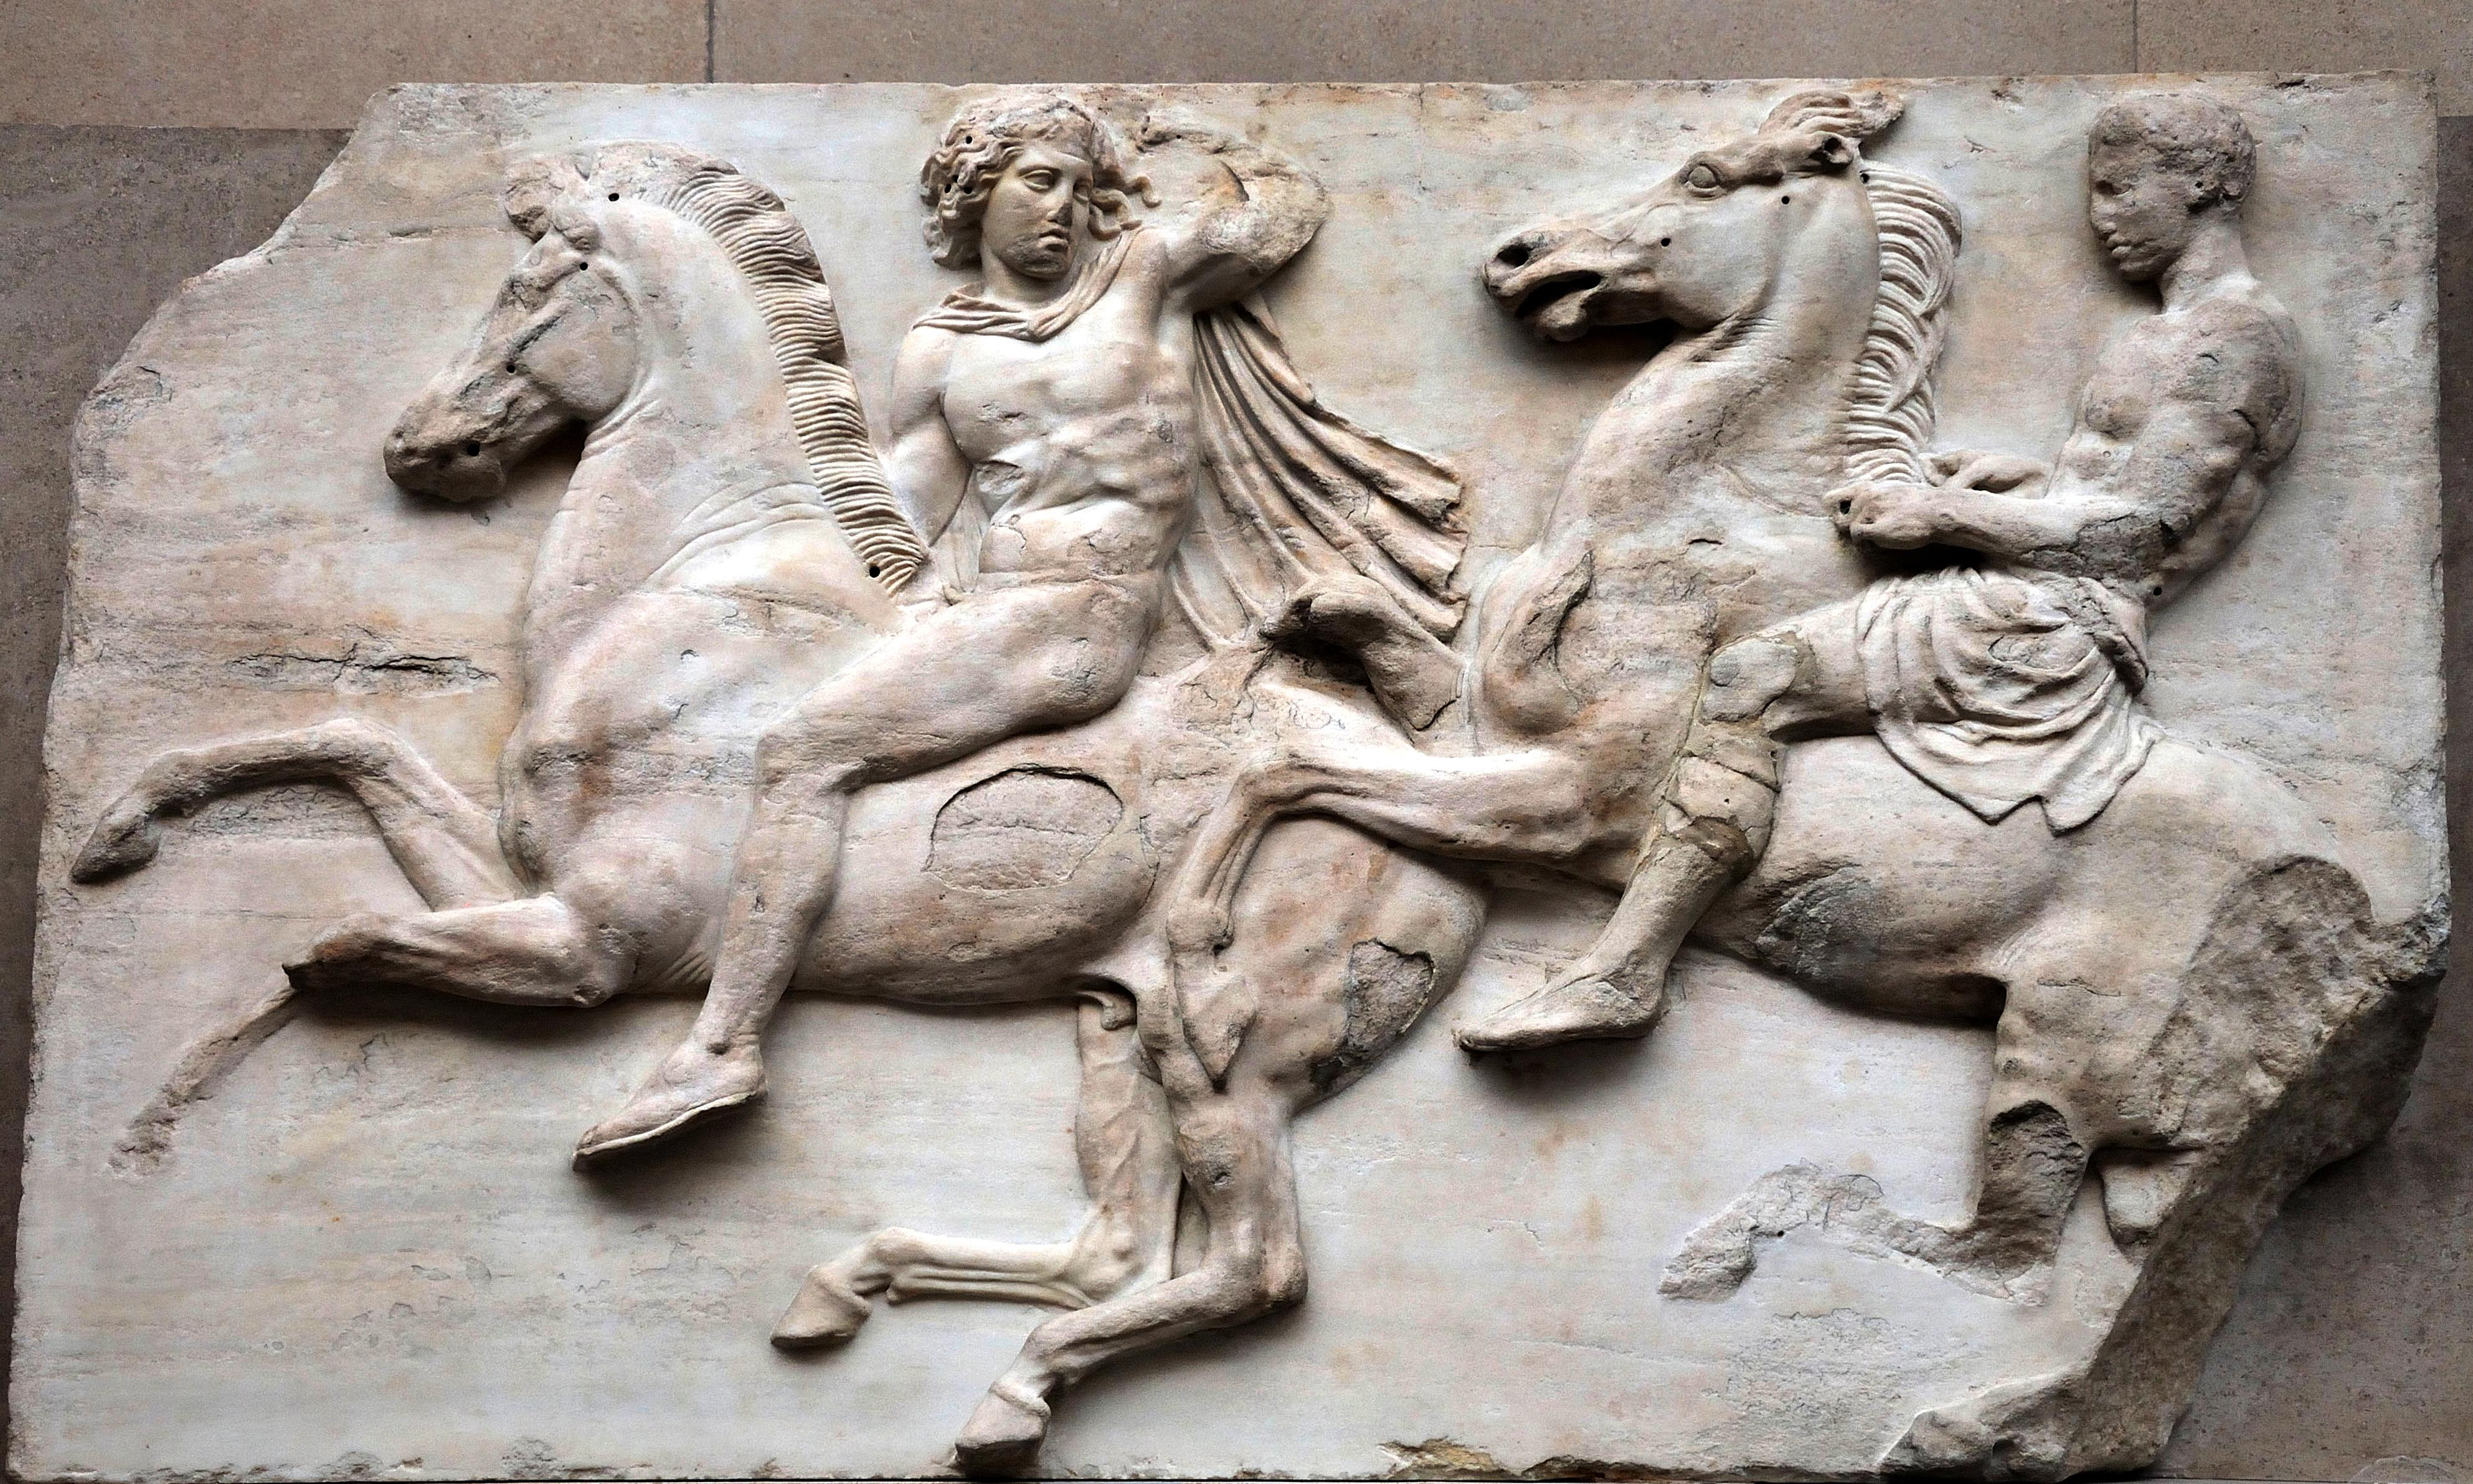 My solution to the Parthenon marbles – let's split them in half